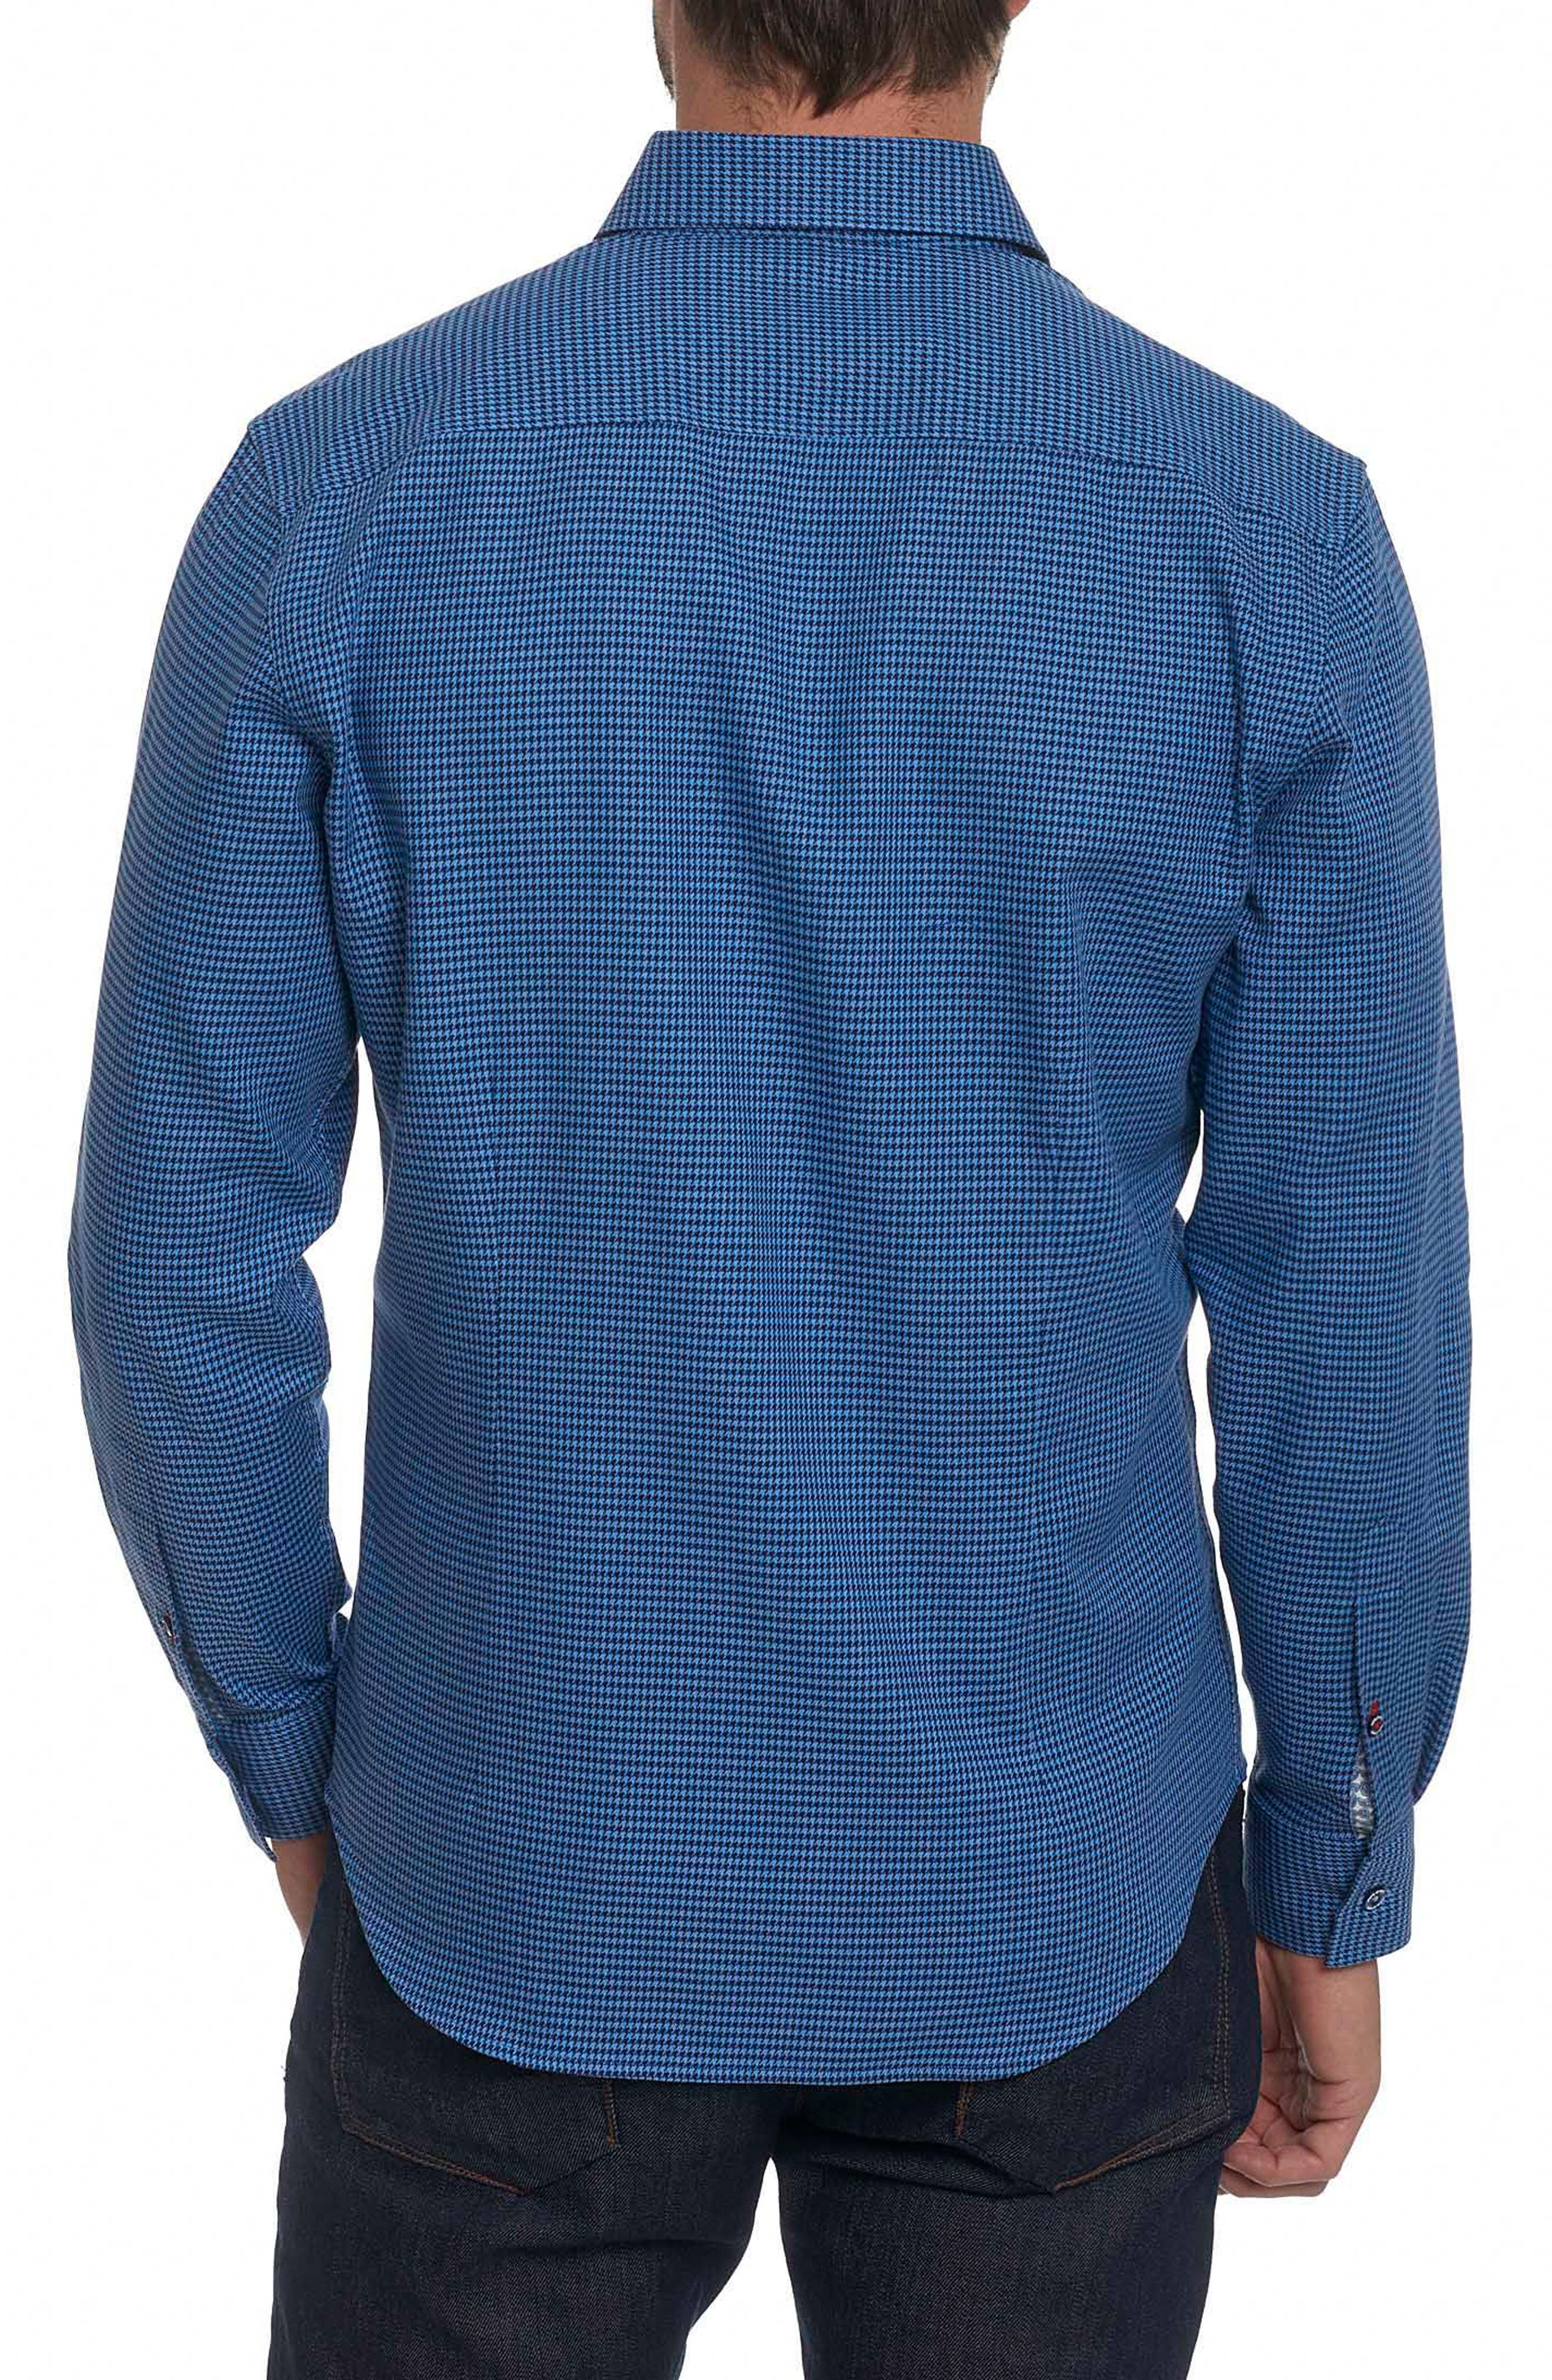 Colin Tailored Fit Sport Shirt,                             Alternate thumbnail 3, color,